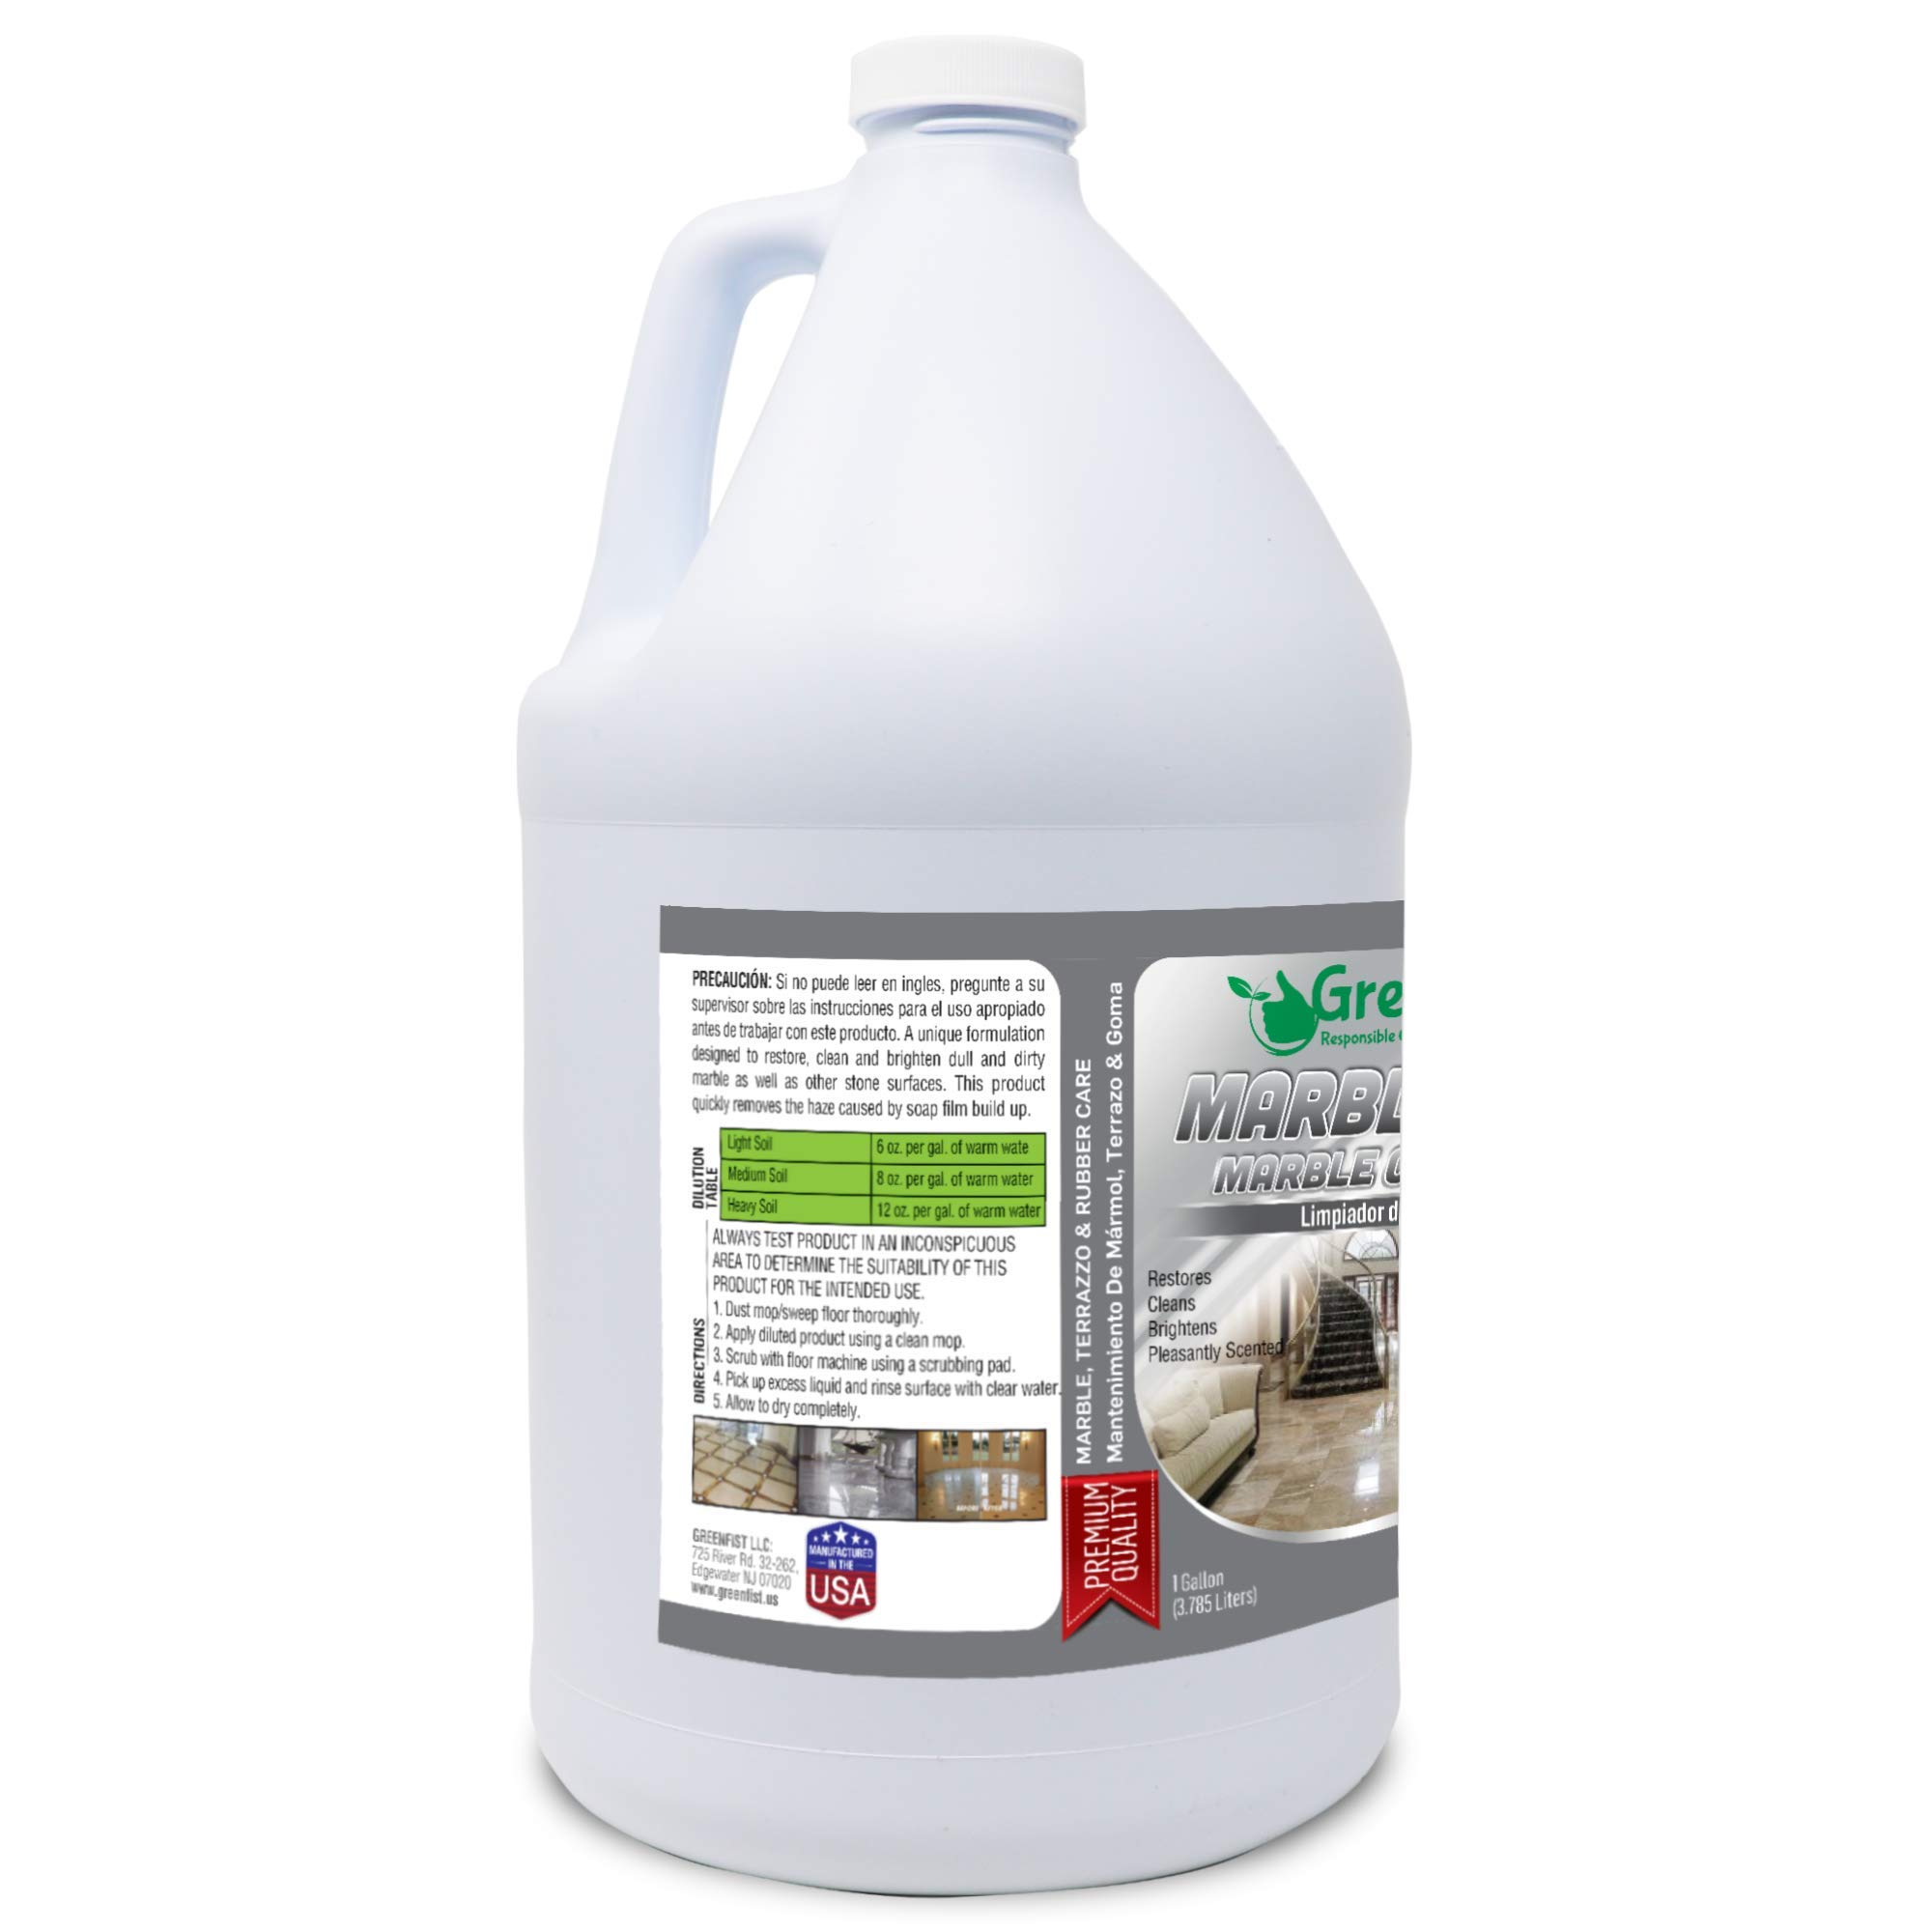 GreenFist Marbleous Marble Cleaner and Other Stone Surfaces Brightener & Restorer [Tile,Countertop,Porcelain,Lime-Stone,Ceramic,Granite,Brick,Vinyl] (1 Gallon) by GreenFist (Image #4)